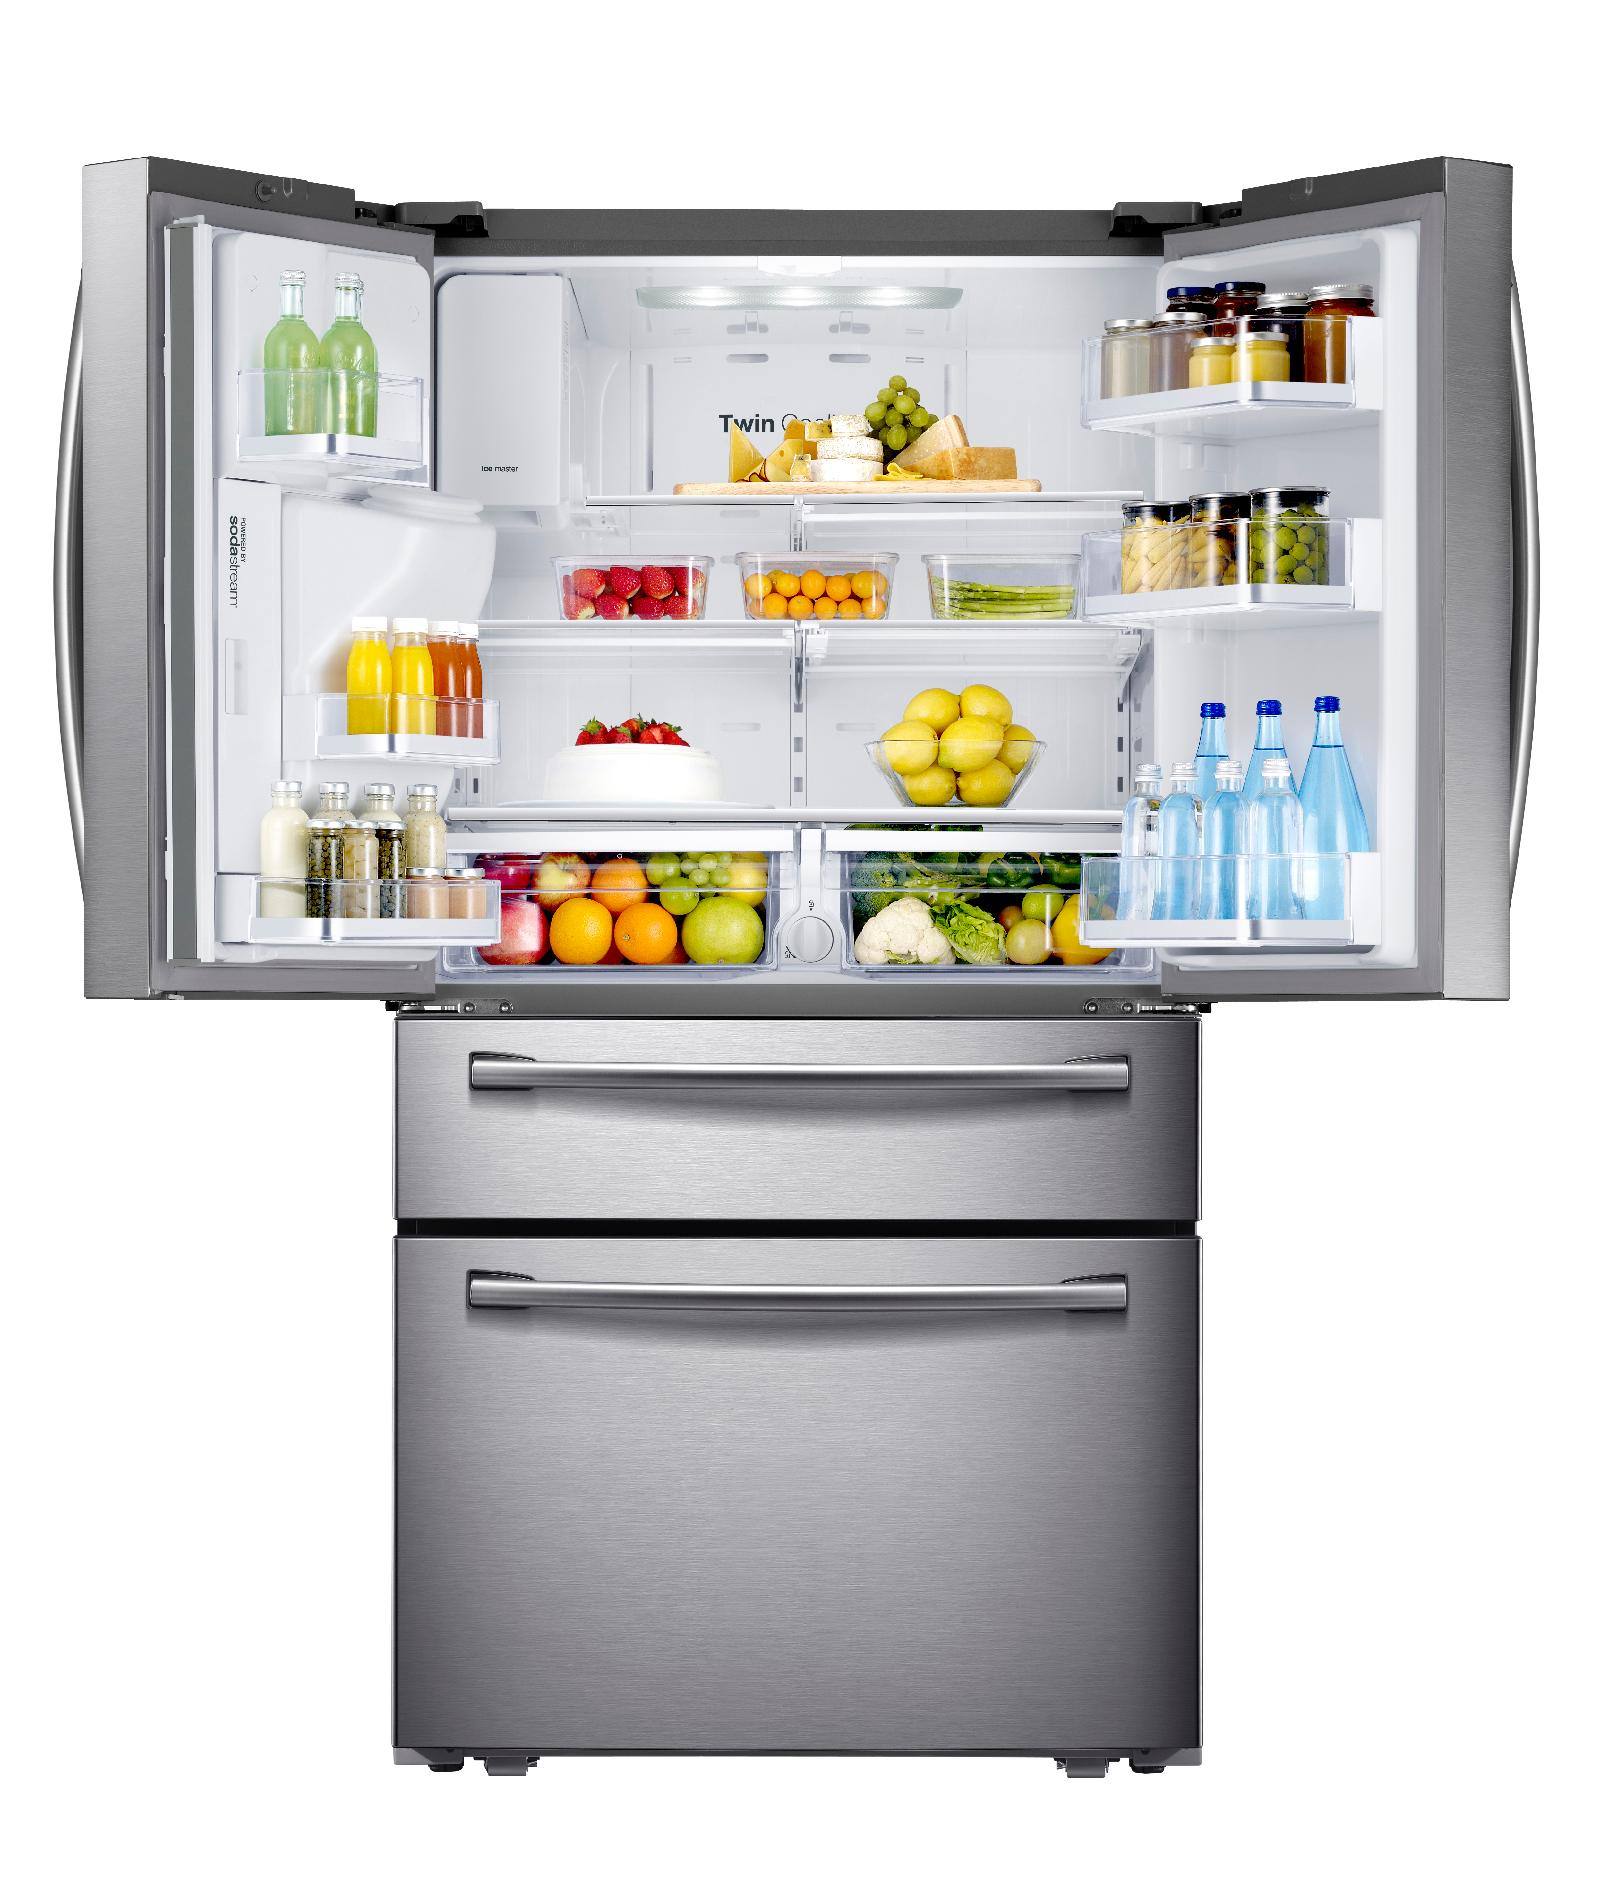 Samsung 30.5 cu. ft. 4-Door Refrigerator w/ Automatic Sparkling Water Dispenser - Stainless Steel